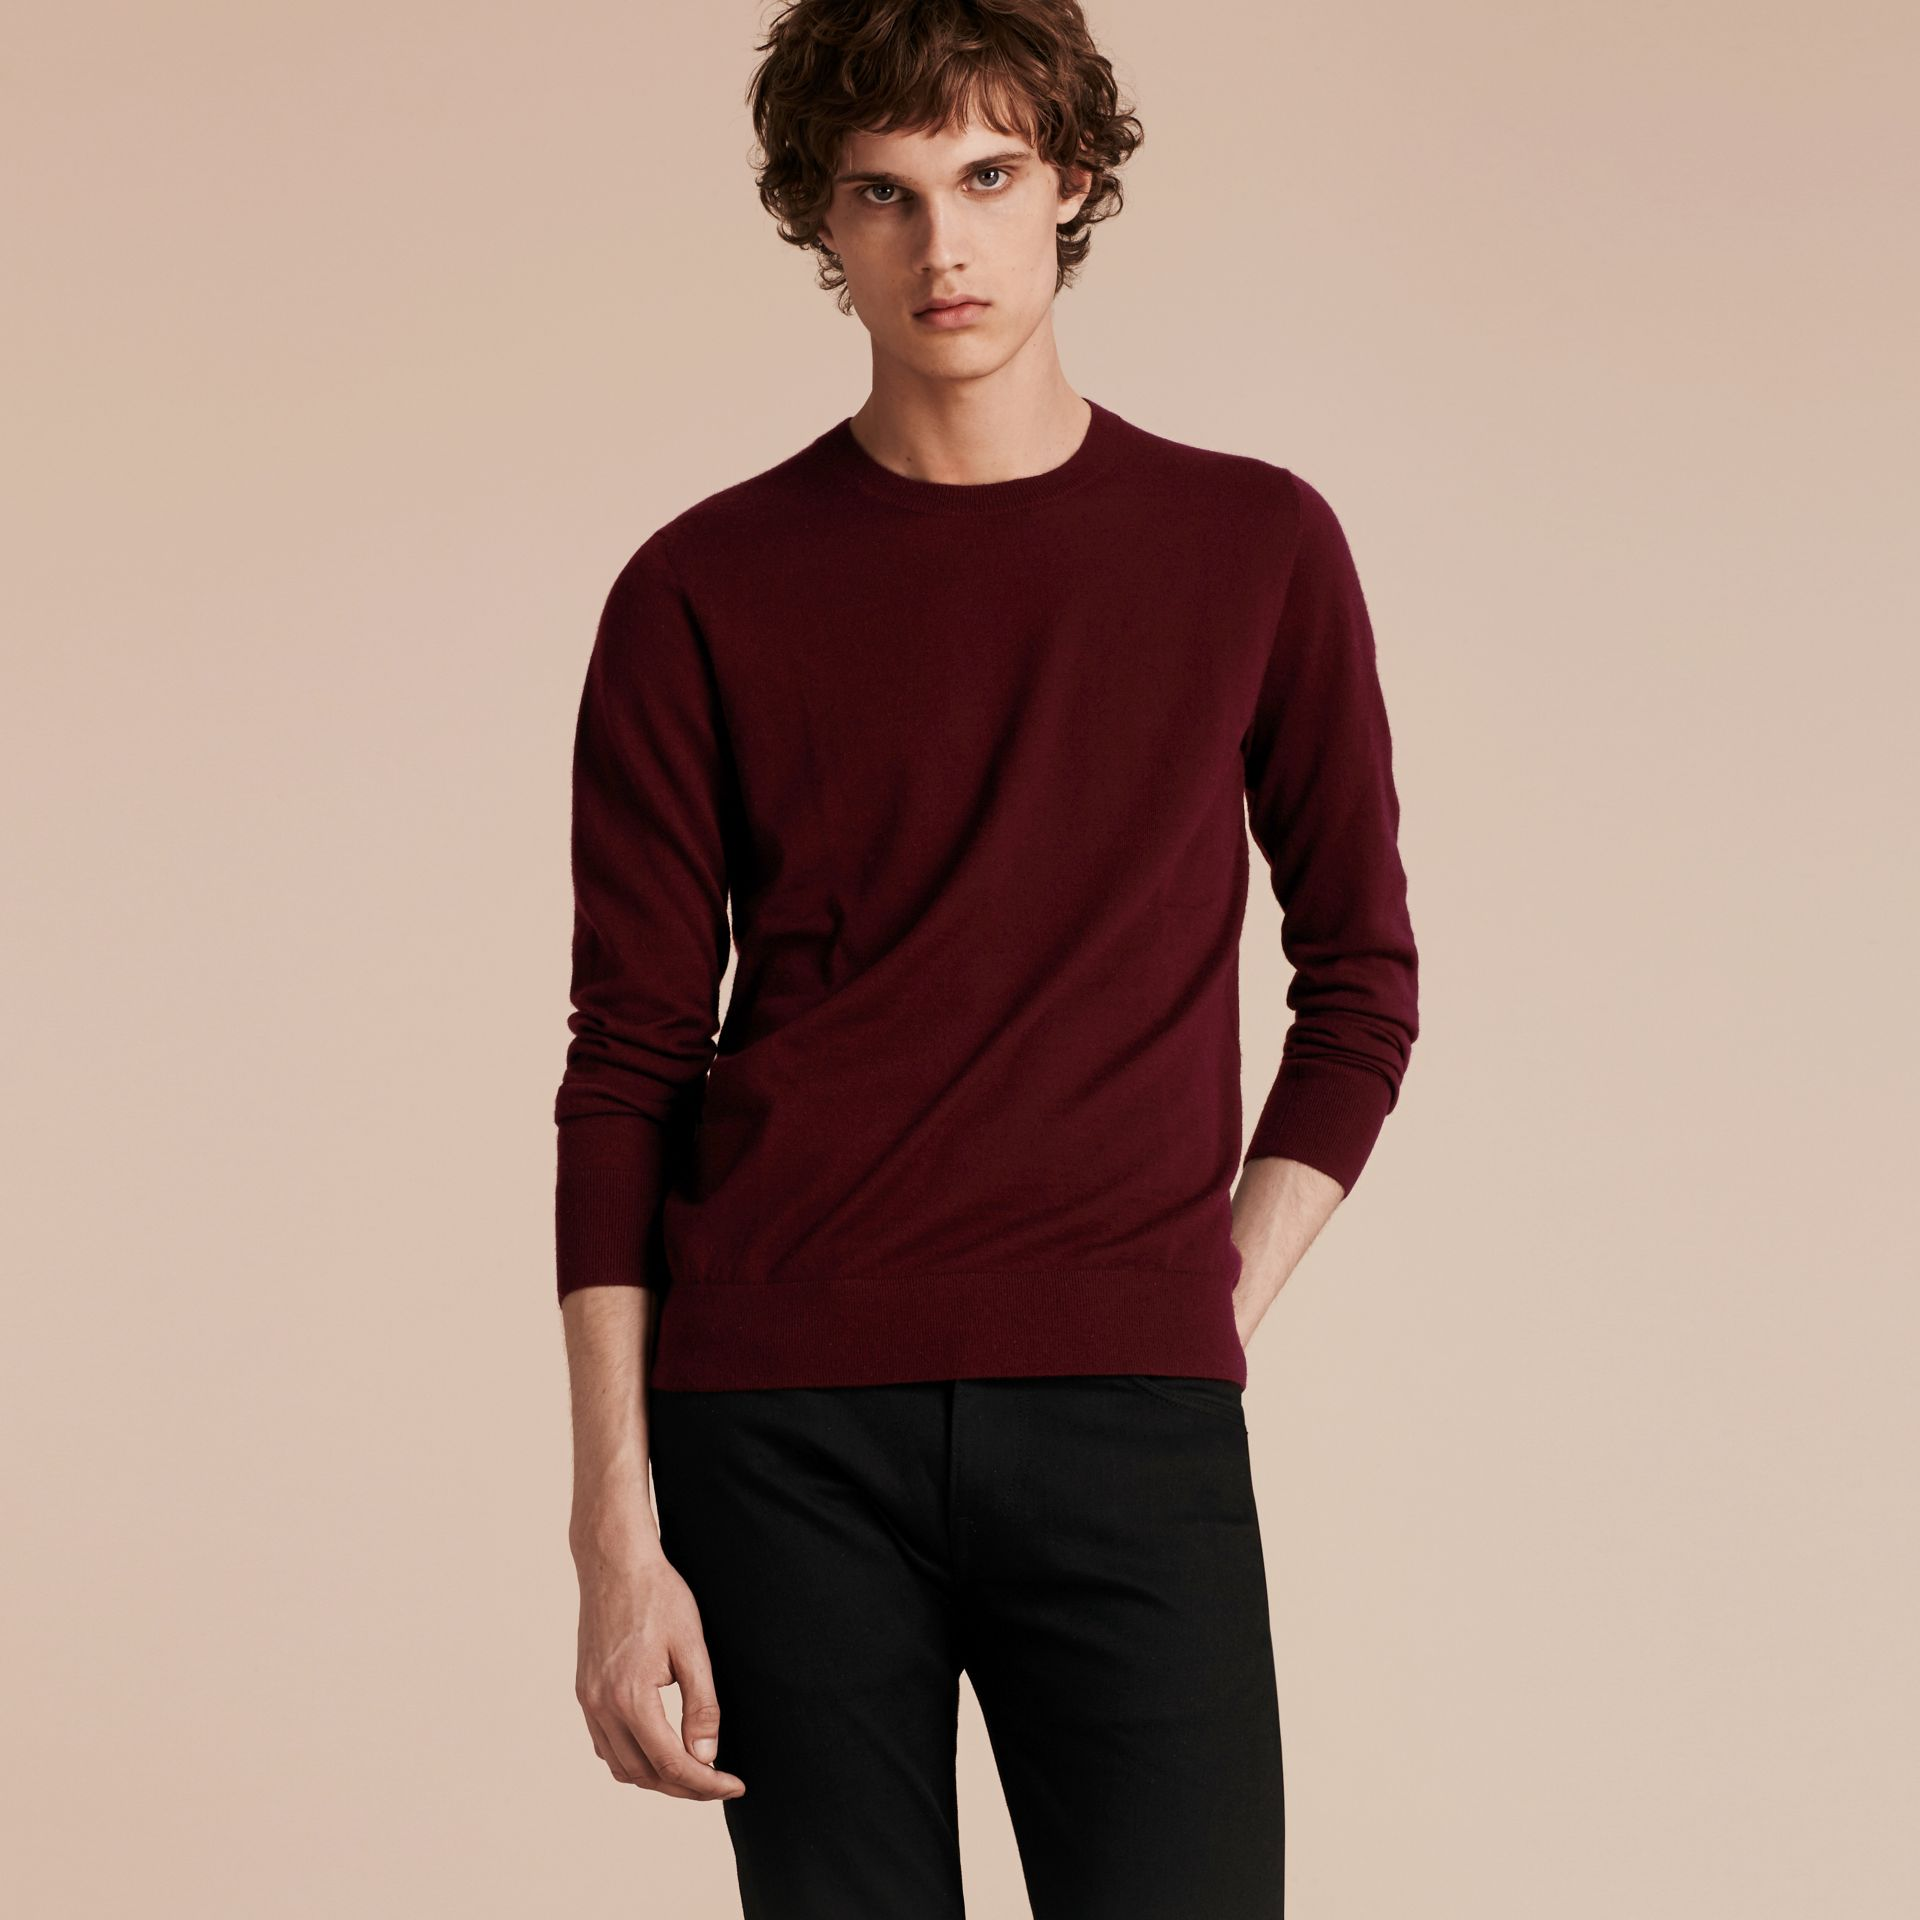 Deep claret Lightweight Crew Neck Cashmere Sweater with Check Trim Deep Claret - gallery image 6